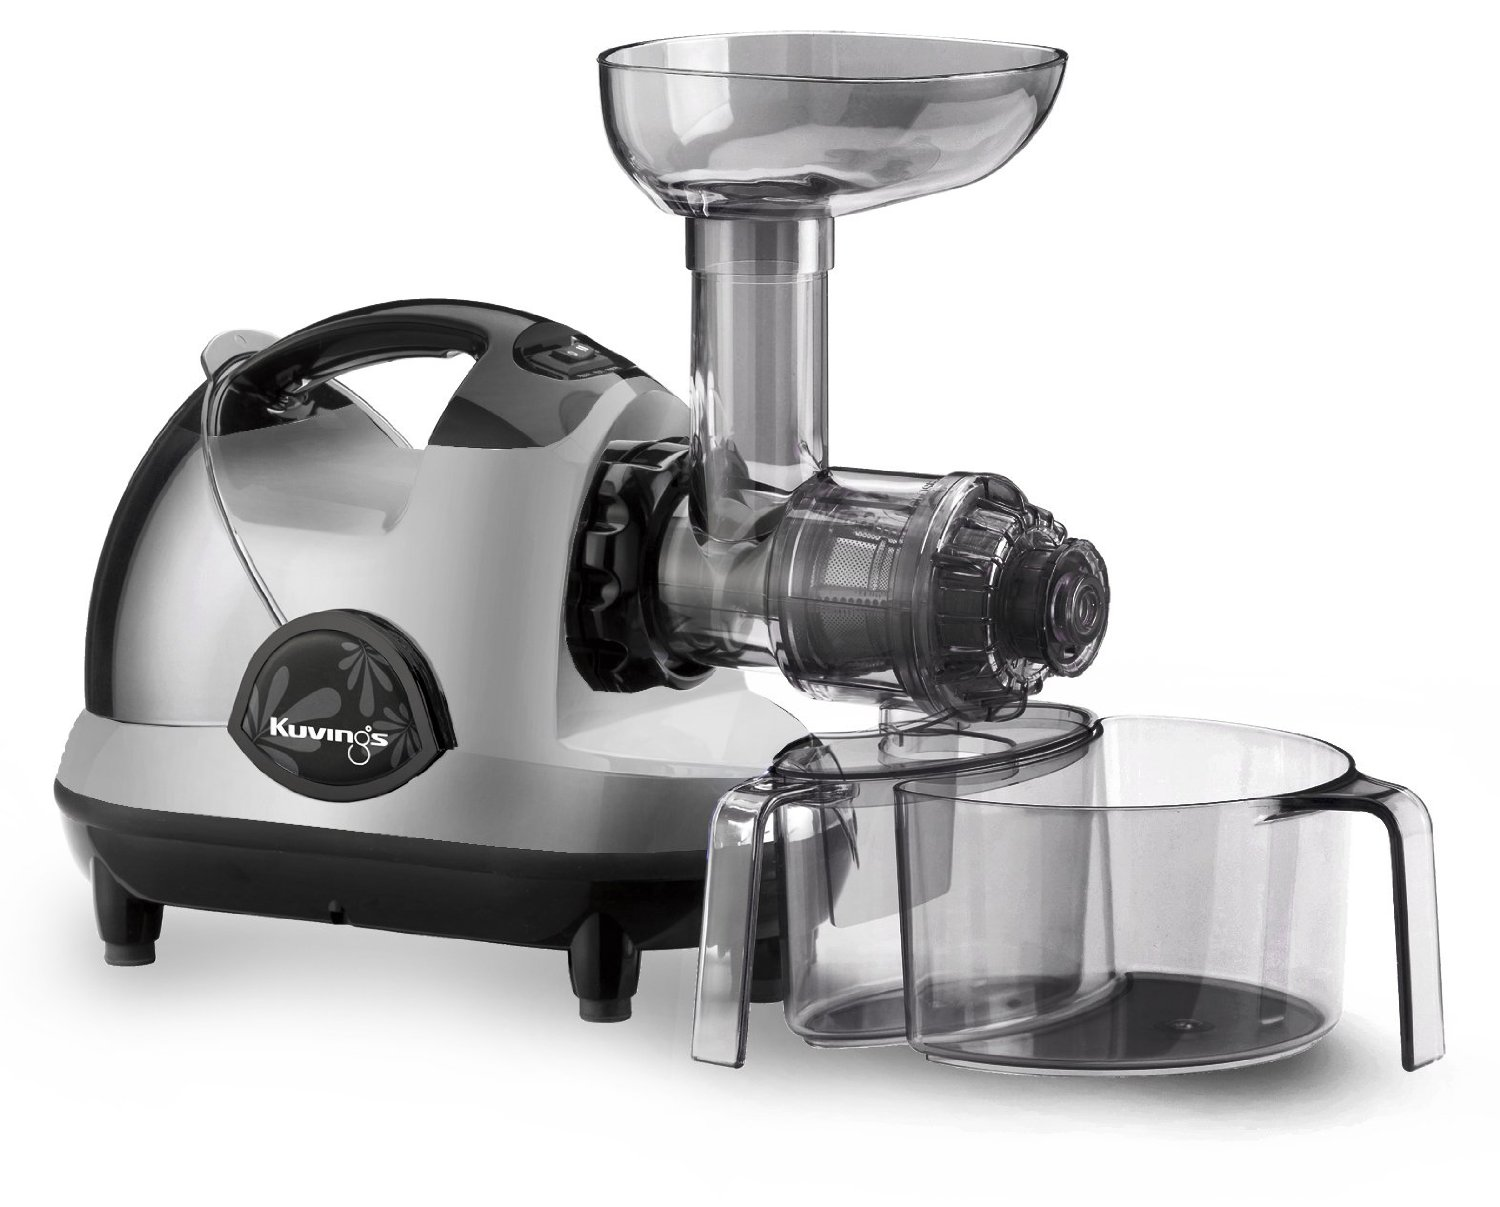 Kuvings NJE3580U Masticating Juicer